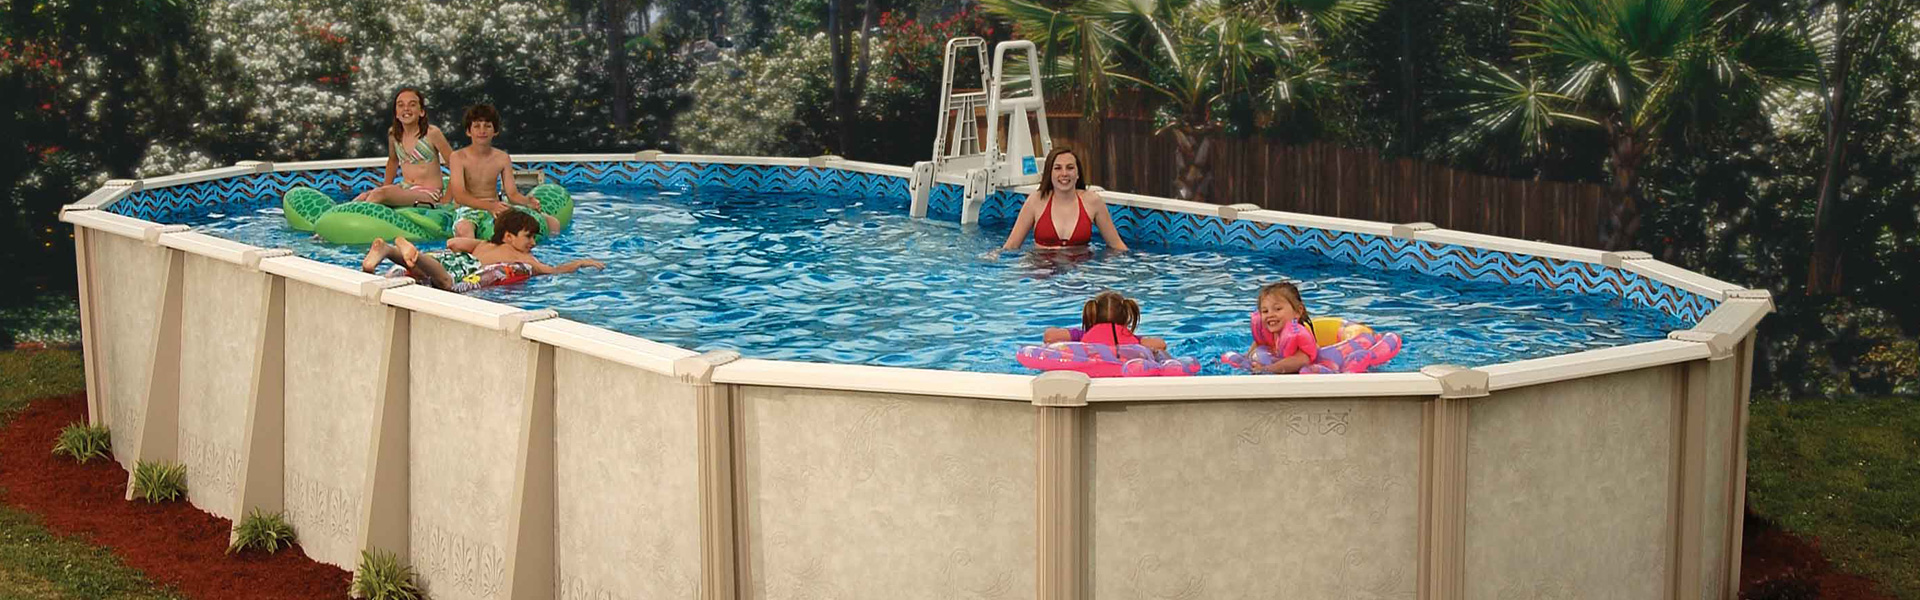 Doughboy Pools - Brazos Valley Pool and Hot Tubs